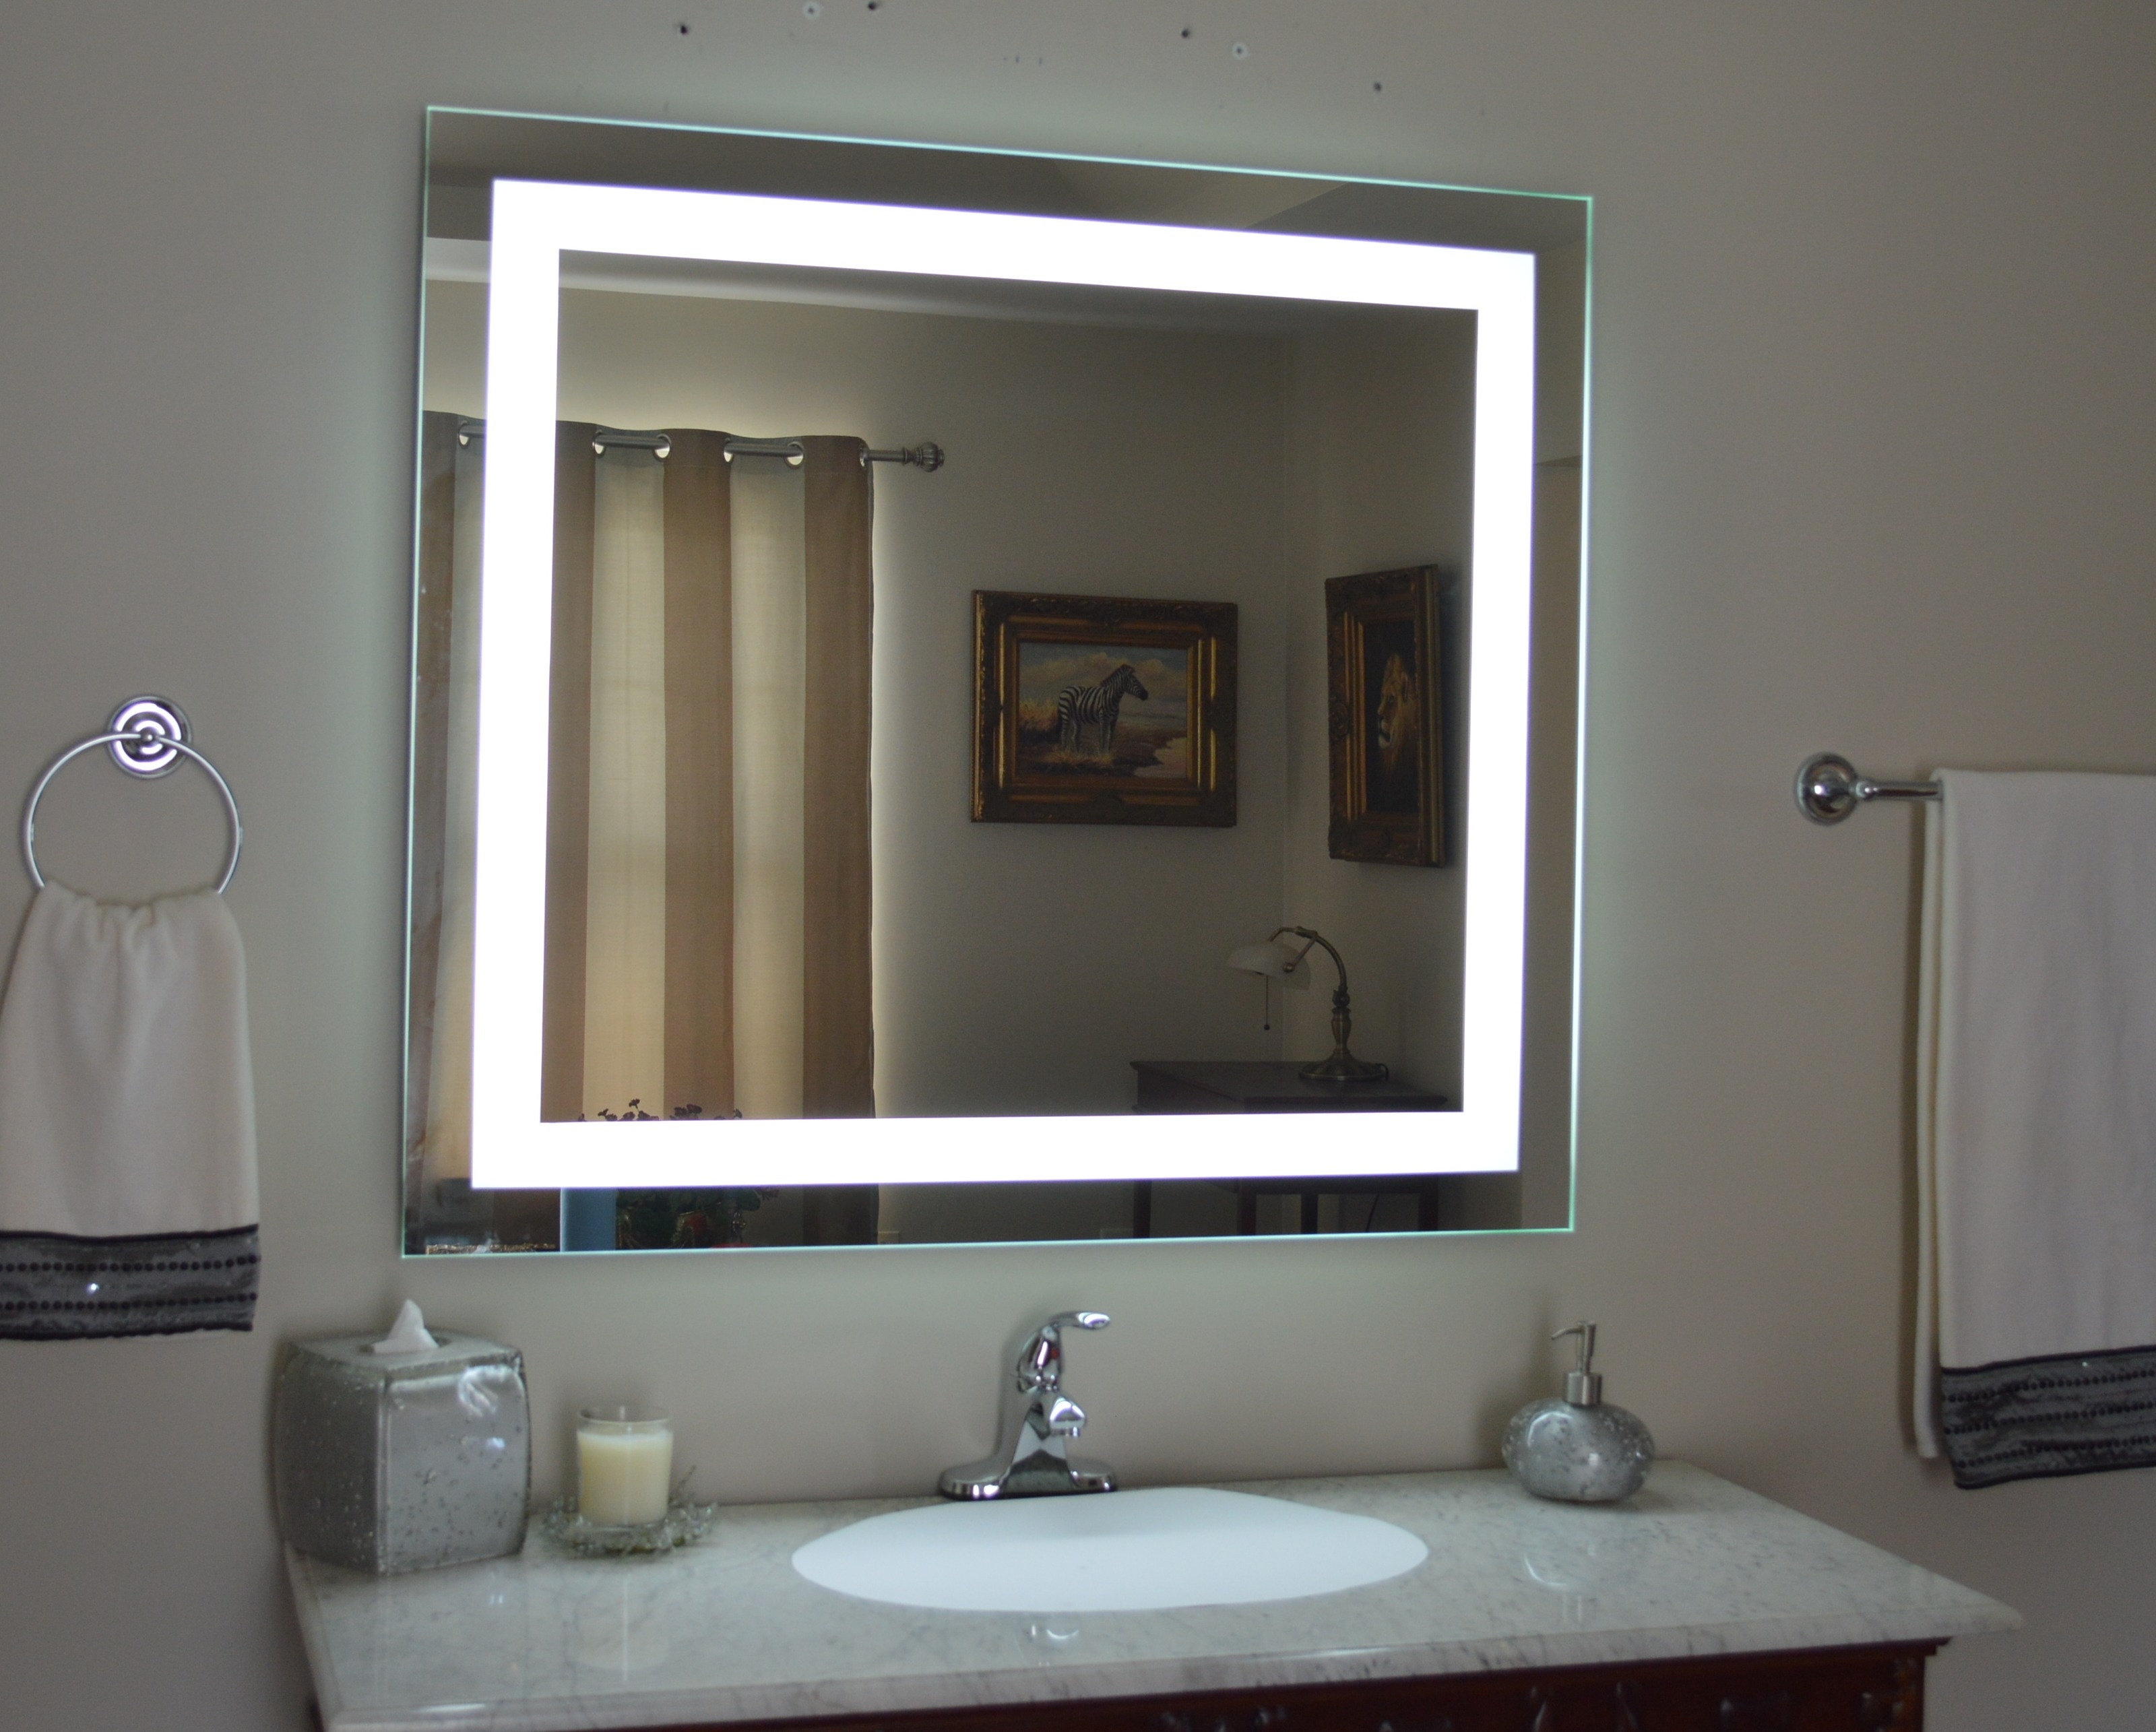 Wall Mounted Illuminated Mirror Wall Mounted Illuminated Mirror decorative mirrors bathroom vanities ecommerce mirrors marble 3200 X 2571